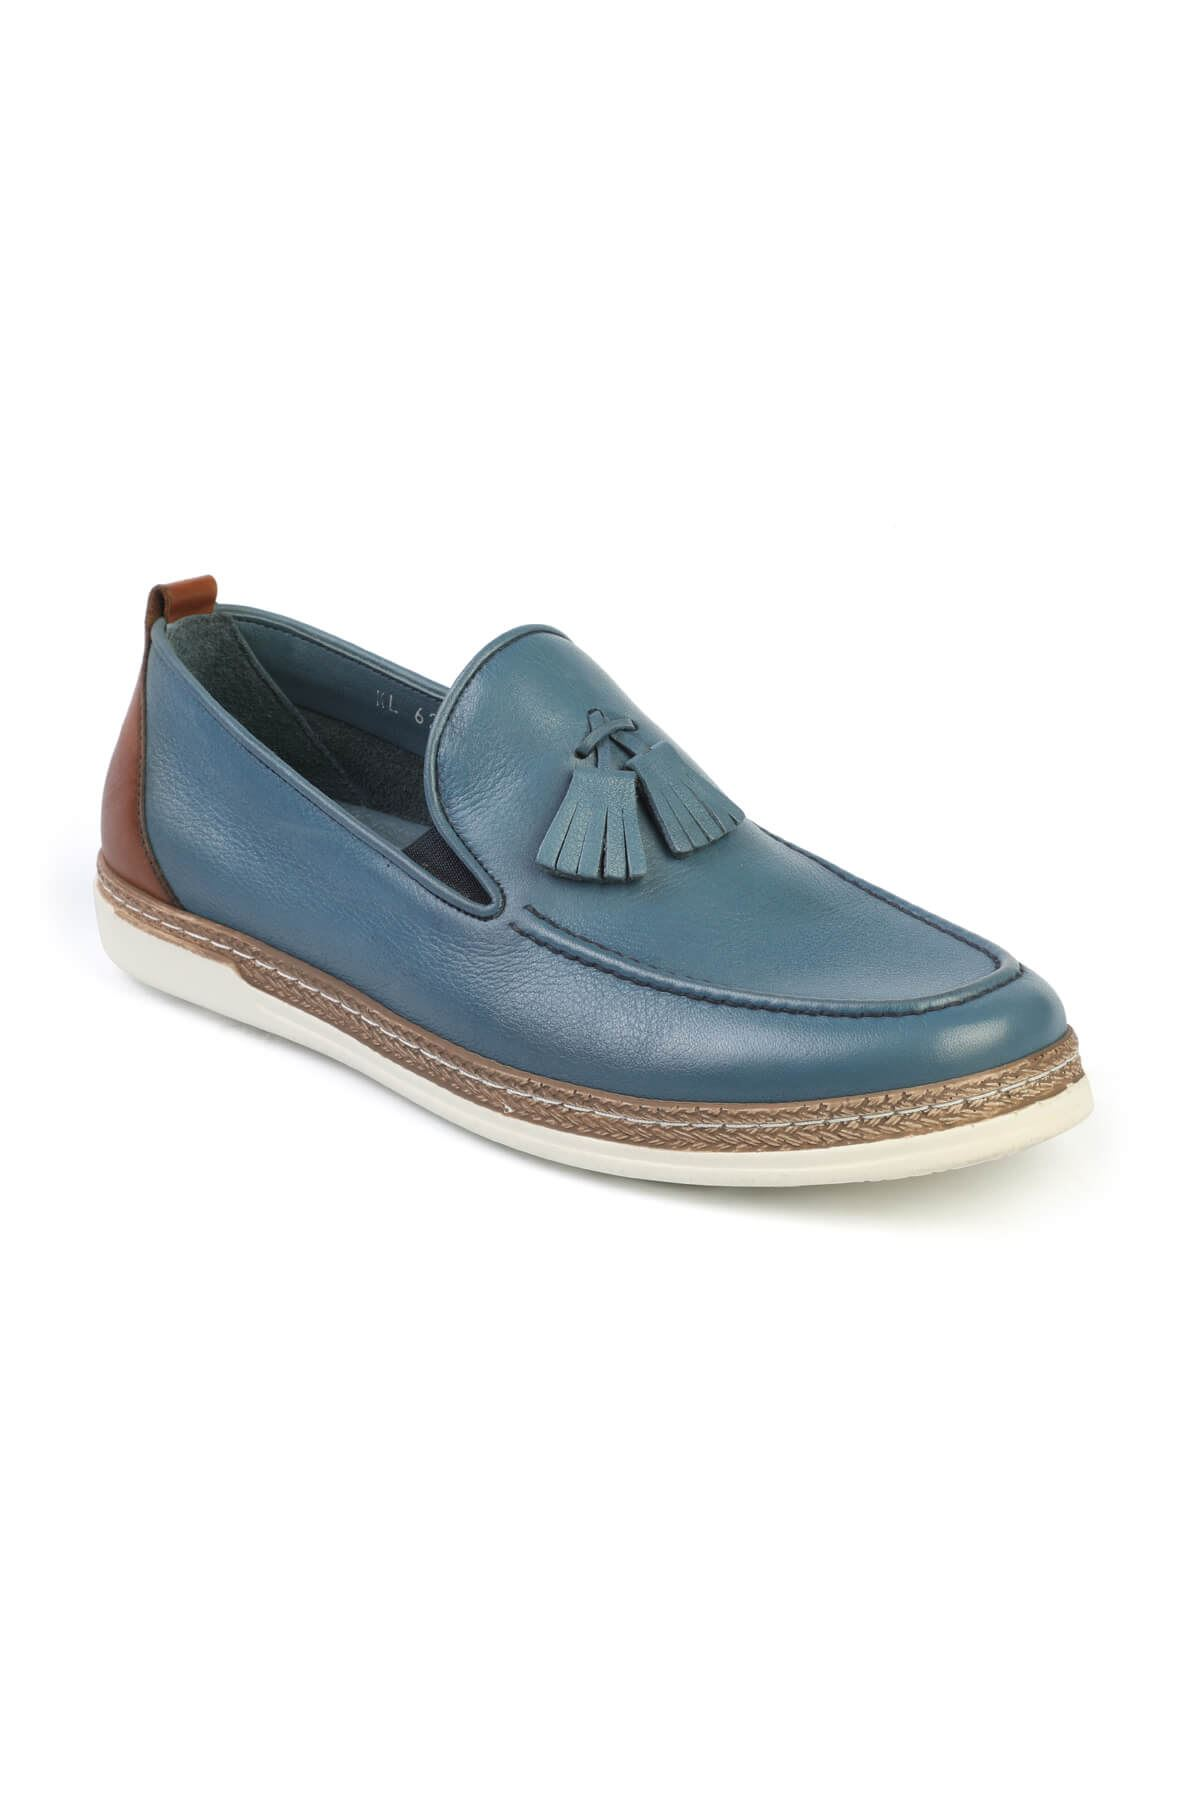 Libero C625 Blue Loafer Shoes